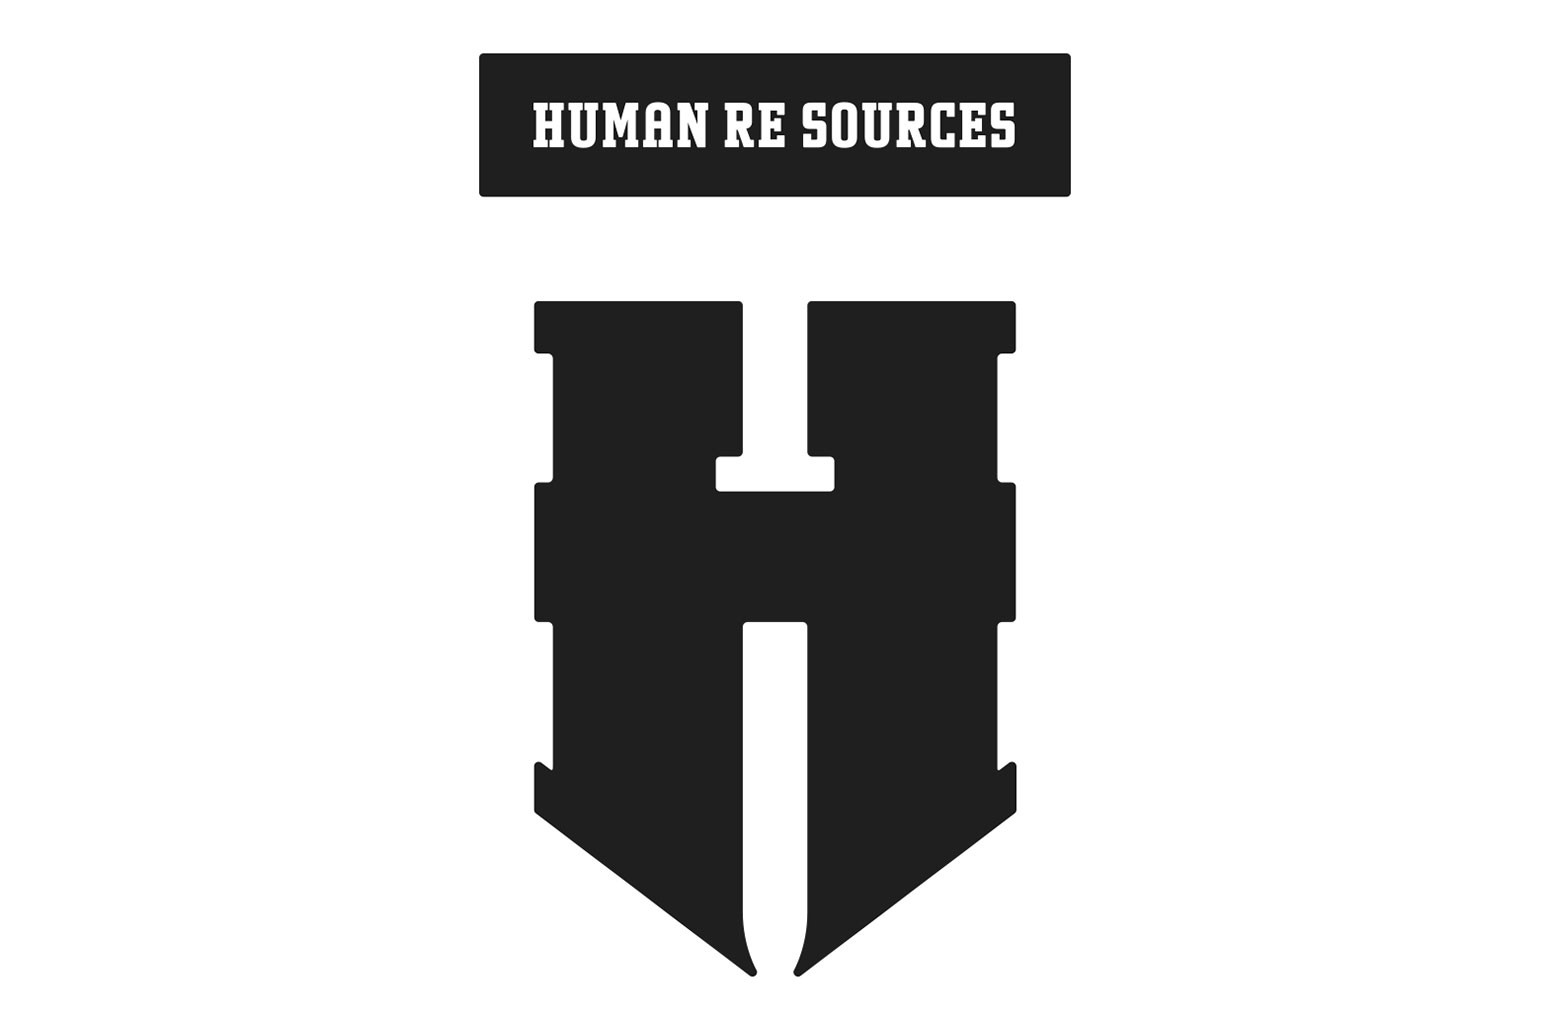 Human Re Sources